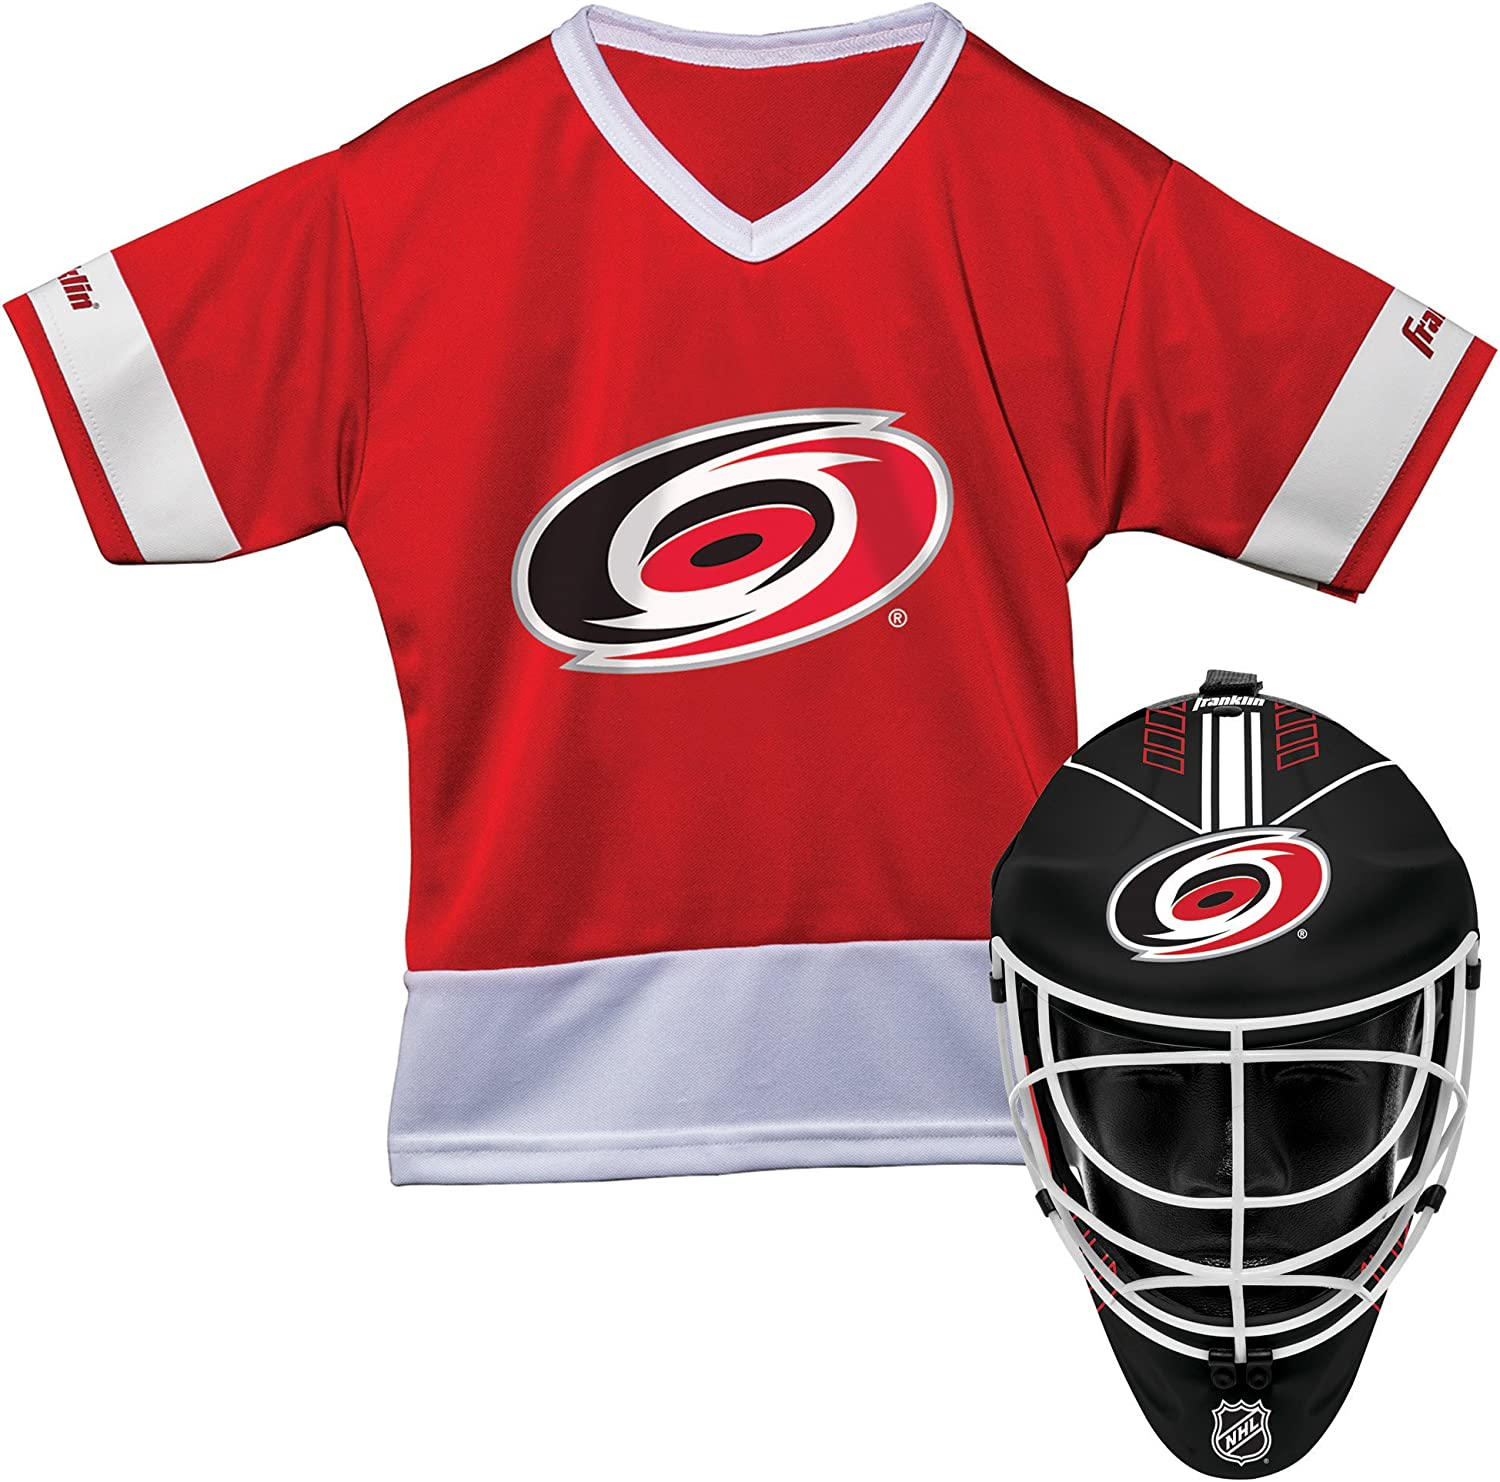 Franklin Sports Carolina Hurricanes Kid's Hockey Costume Set - Youth Jersey & Goalie Mask - Halloween Fan Outfit - NHL Official Licensed Product